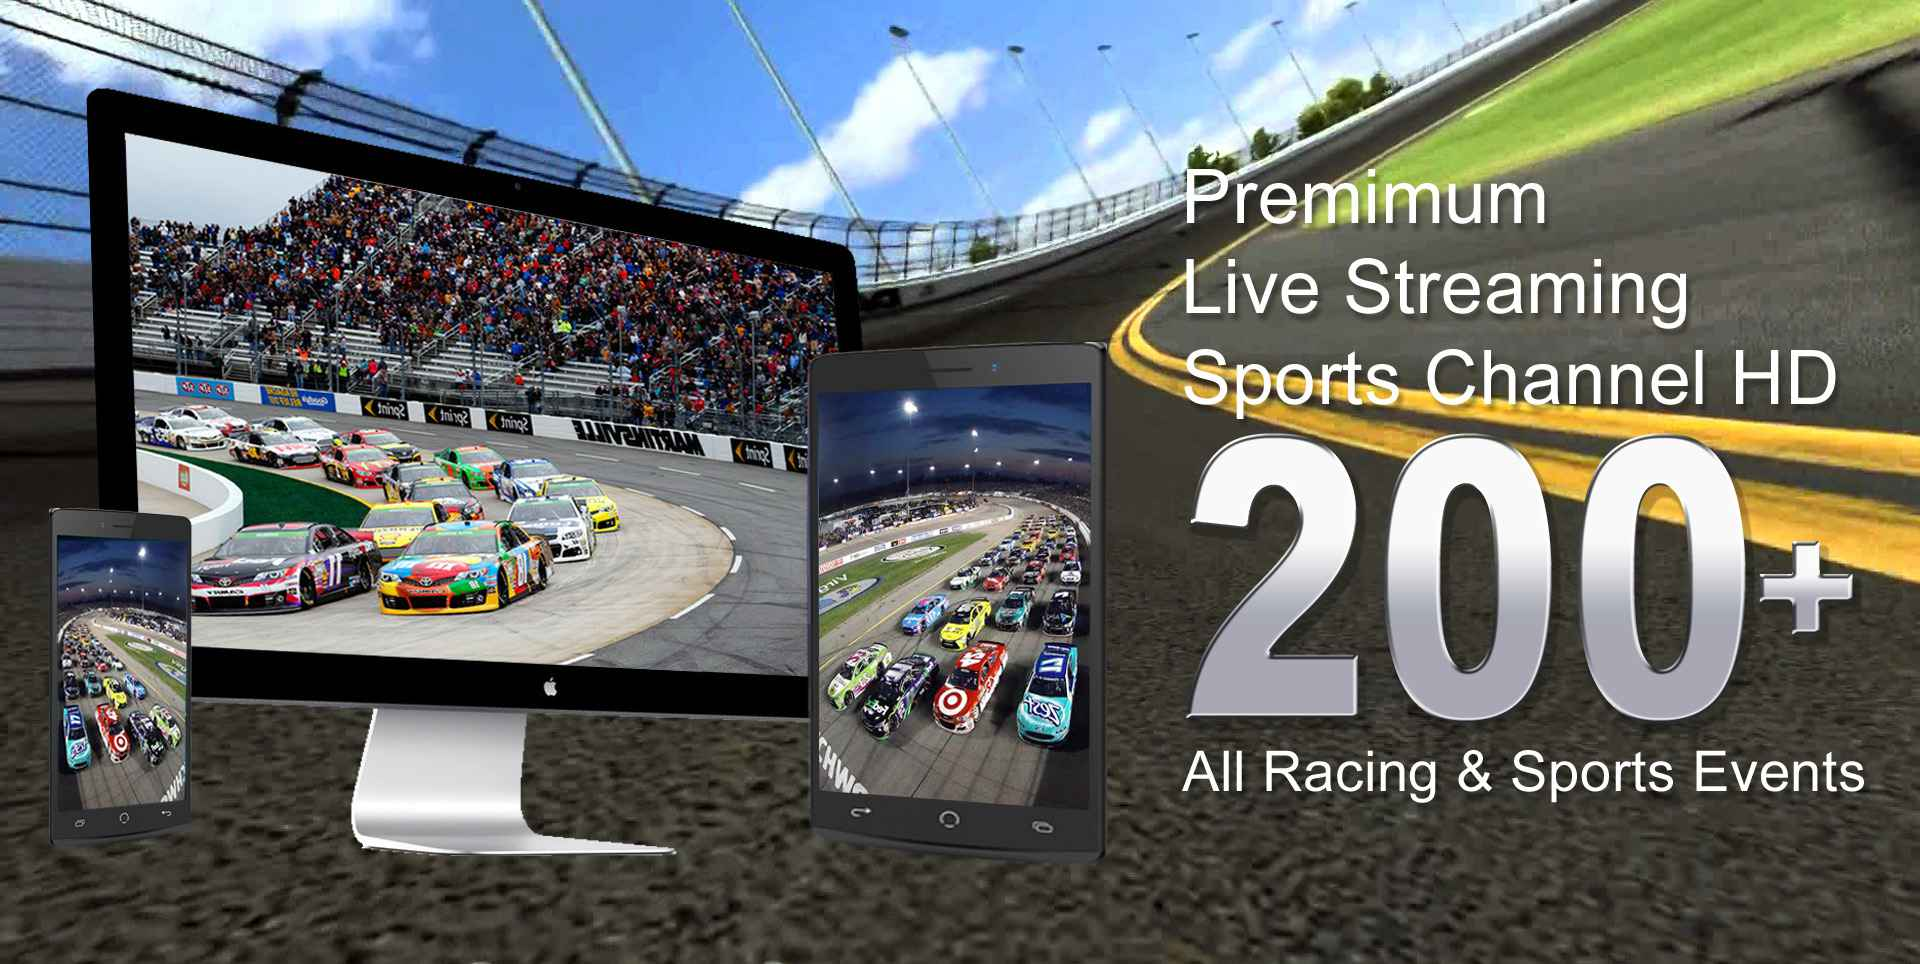 NASCAR Xfinity Series-Lilly Diabetes 250 Complete Race 2018